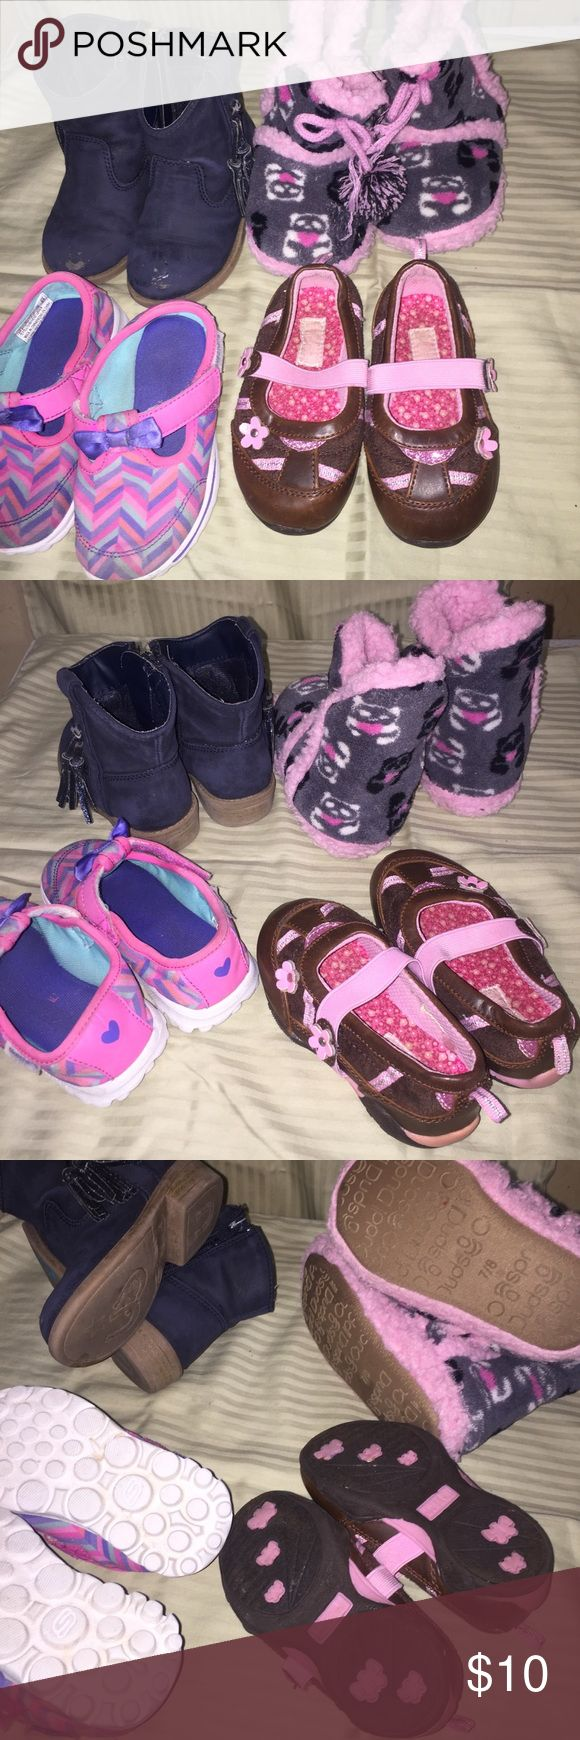 3 pairs girls 6/7 shoes Skechers cat & jack boots Slippers not included. Some scuffs on toe of boots pic Was taken with the flash so they look worse than how they look in person still a lot of life left Skechers Shoes Sneakers